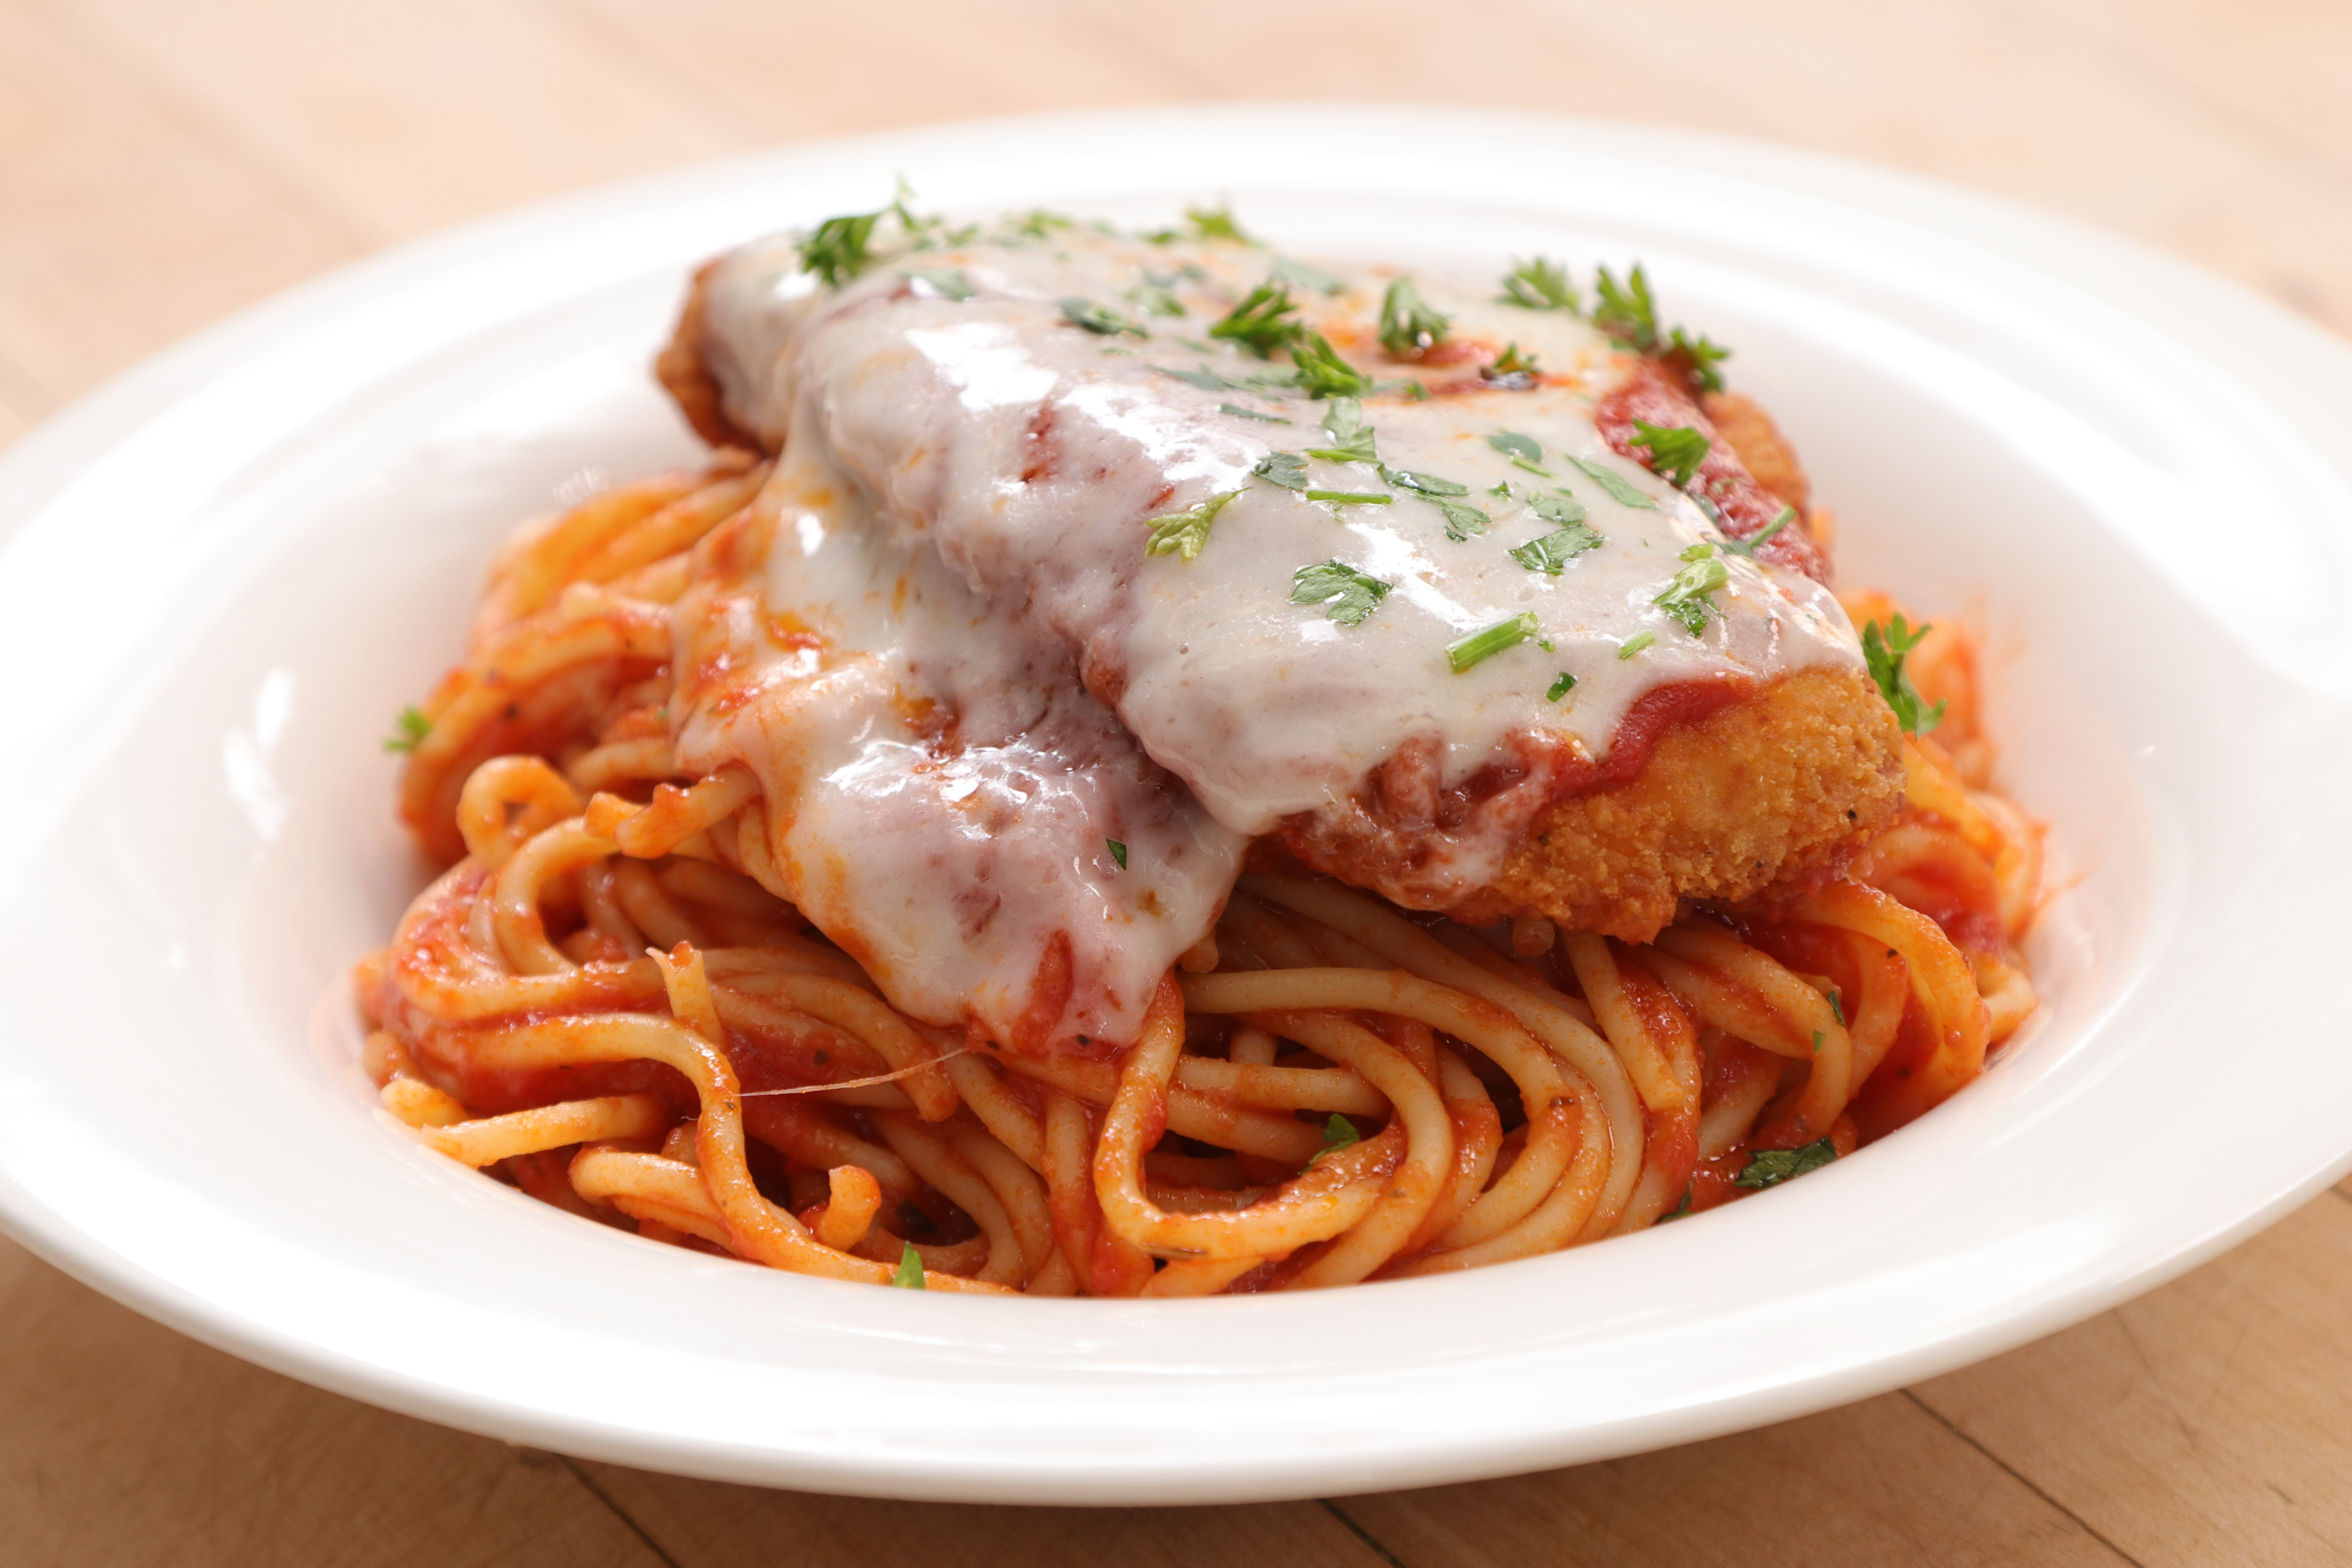 Chicken Parmigiana with Spaghetti from Ameci Pizza & Pasta - Lake Forest in Lake Forest, CA